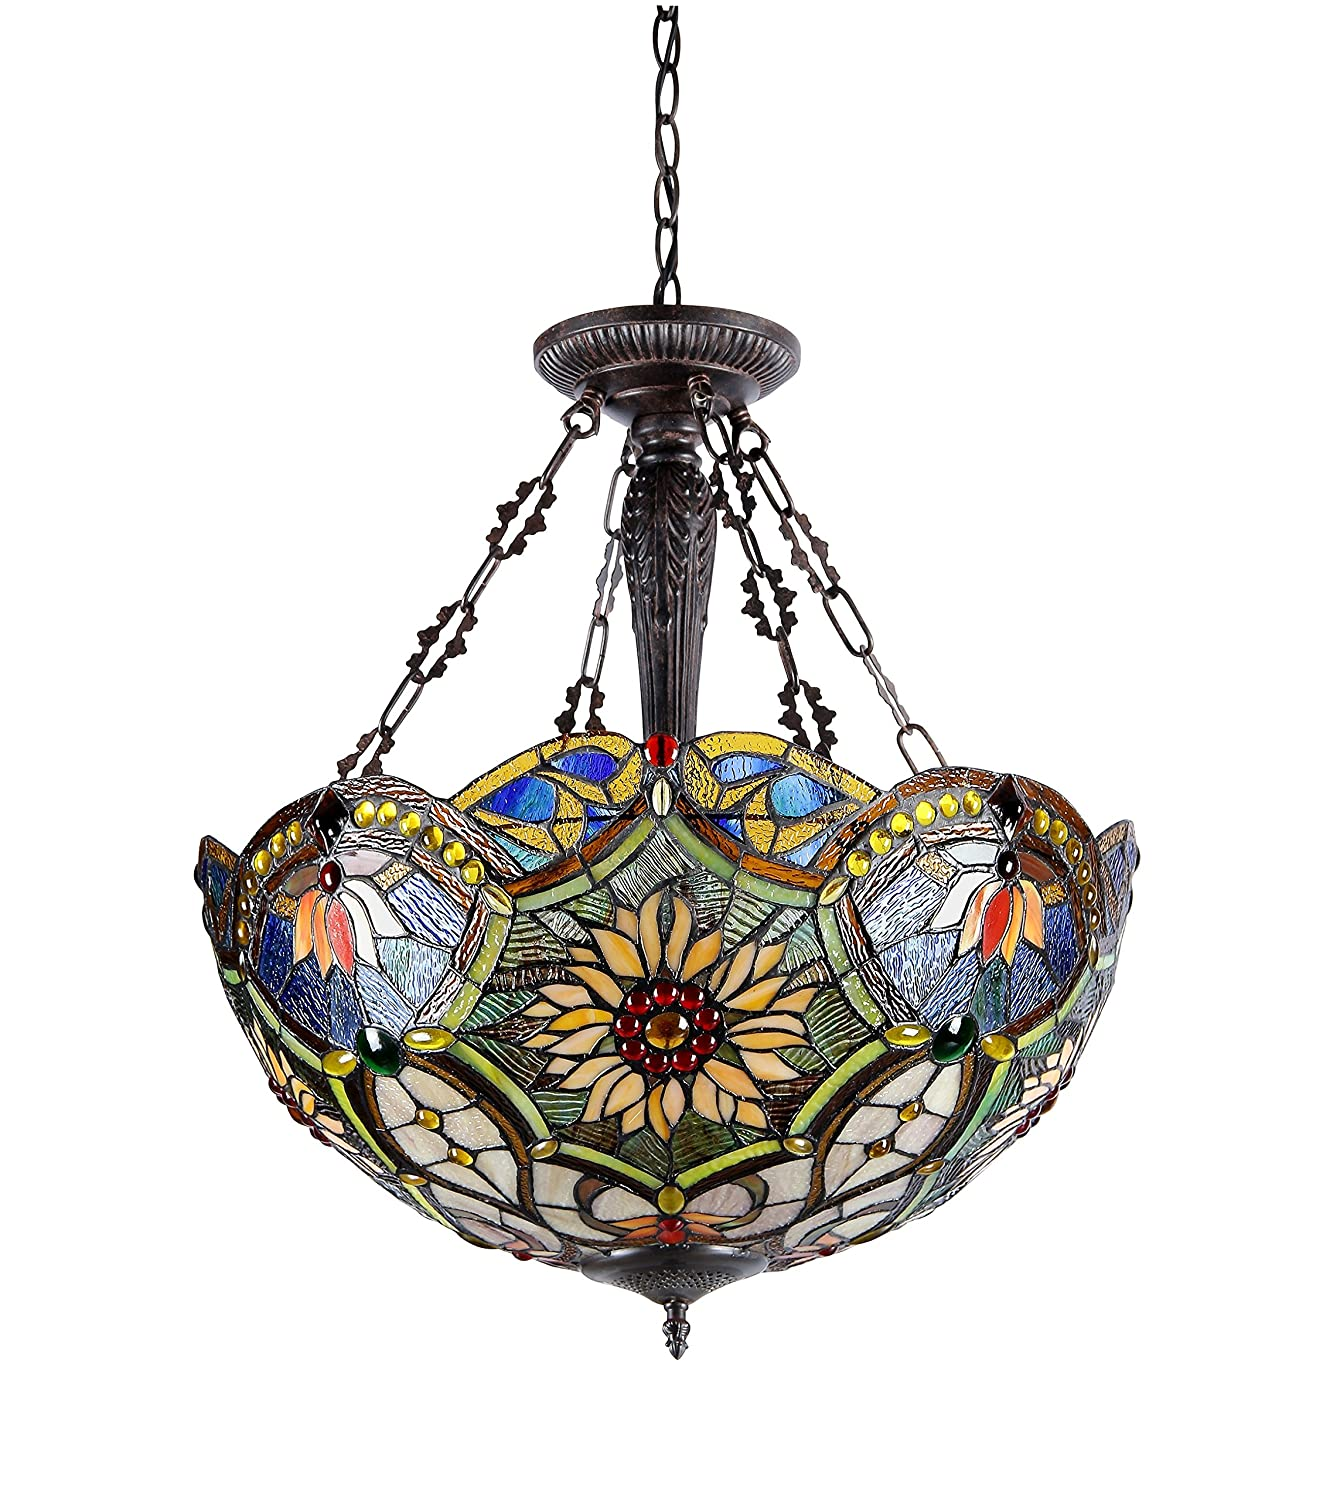 Chloe Lighting CH33270VB21-UH3 Tiffany-Style Victorian 3 Light Inverted Ceiling Pendant 21-Inch Shade Multi-Colored - - Amazon.com  sc 1 st  Amazon.com & Chloe Lighting CH33270VB21-UH3 Tiffany-Style Victorian 3 Light ...